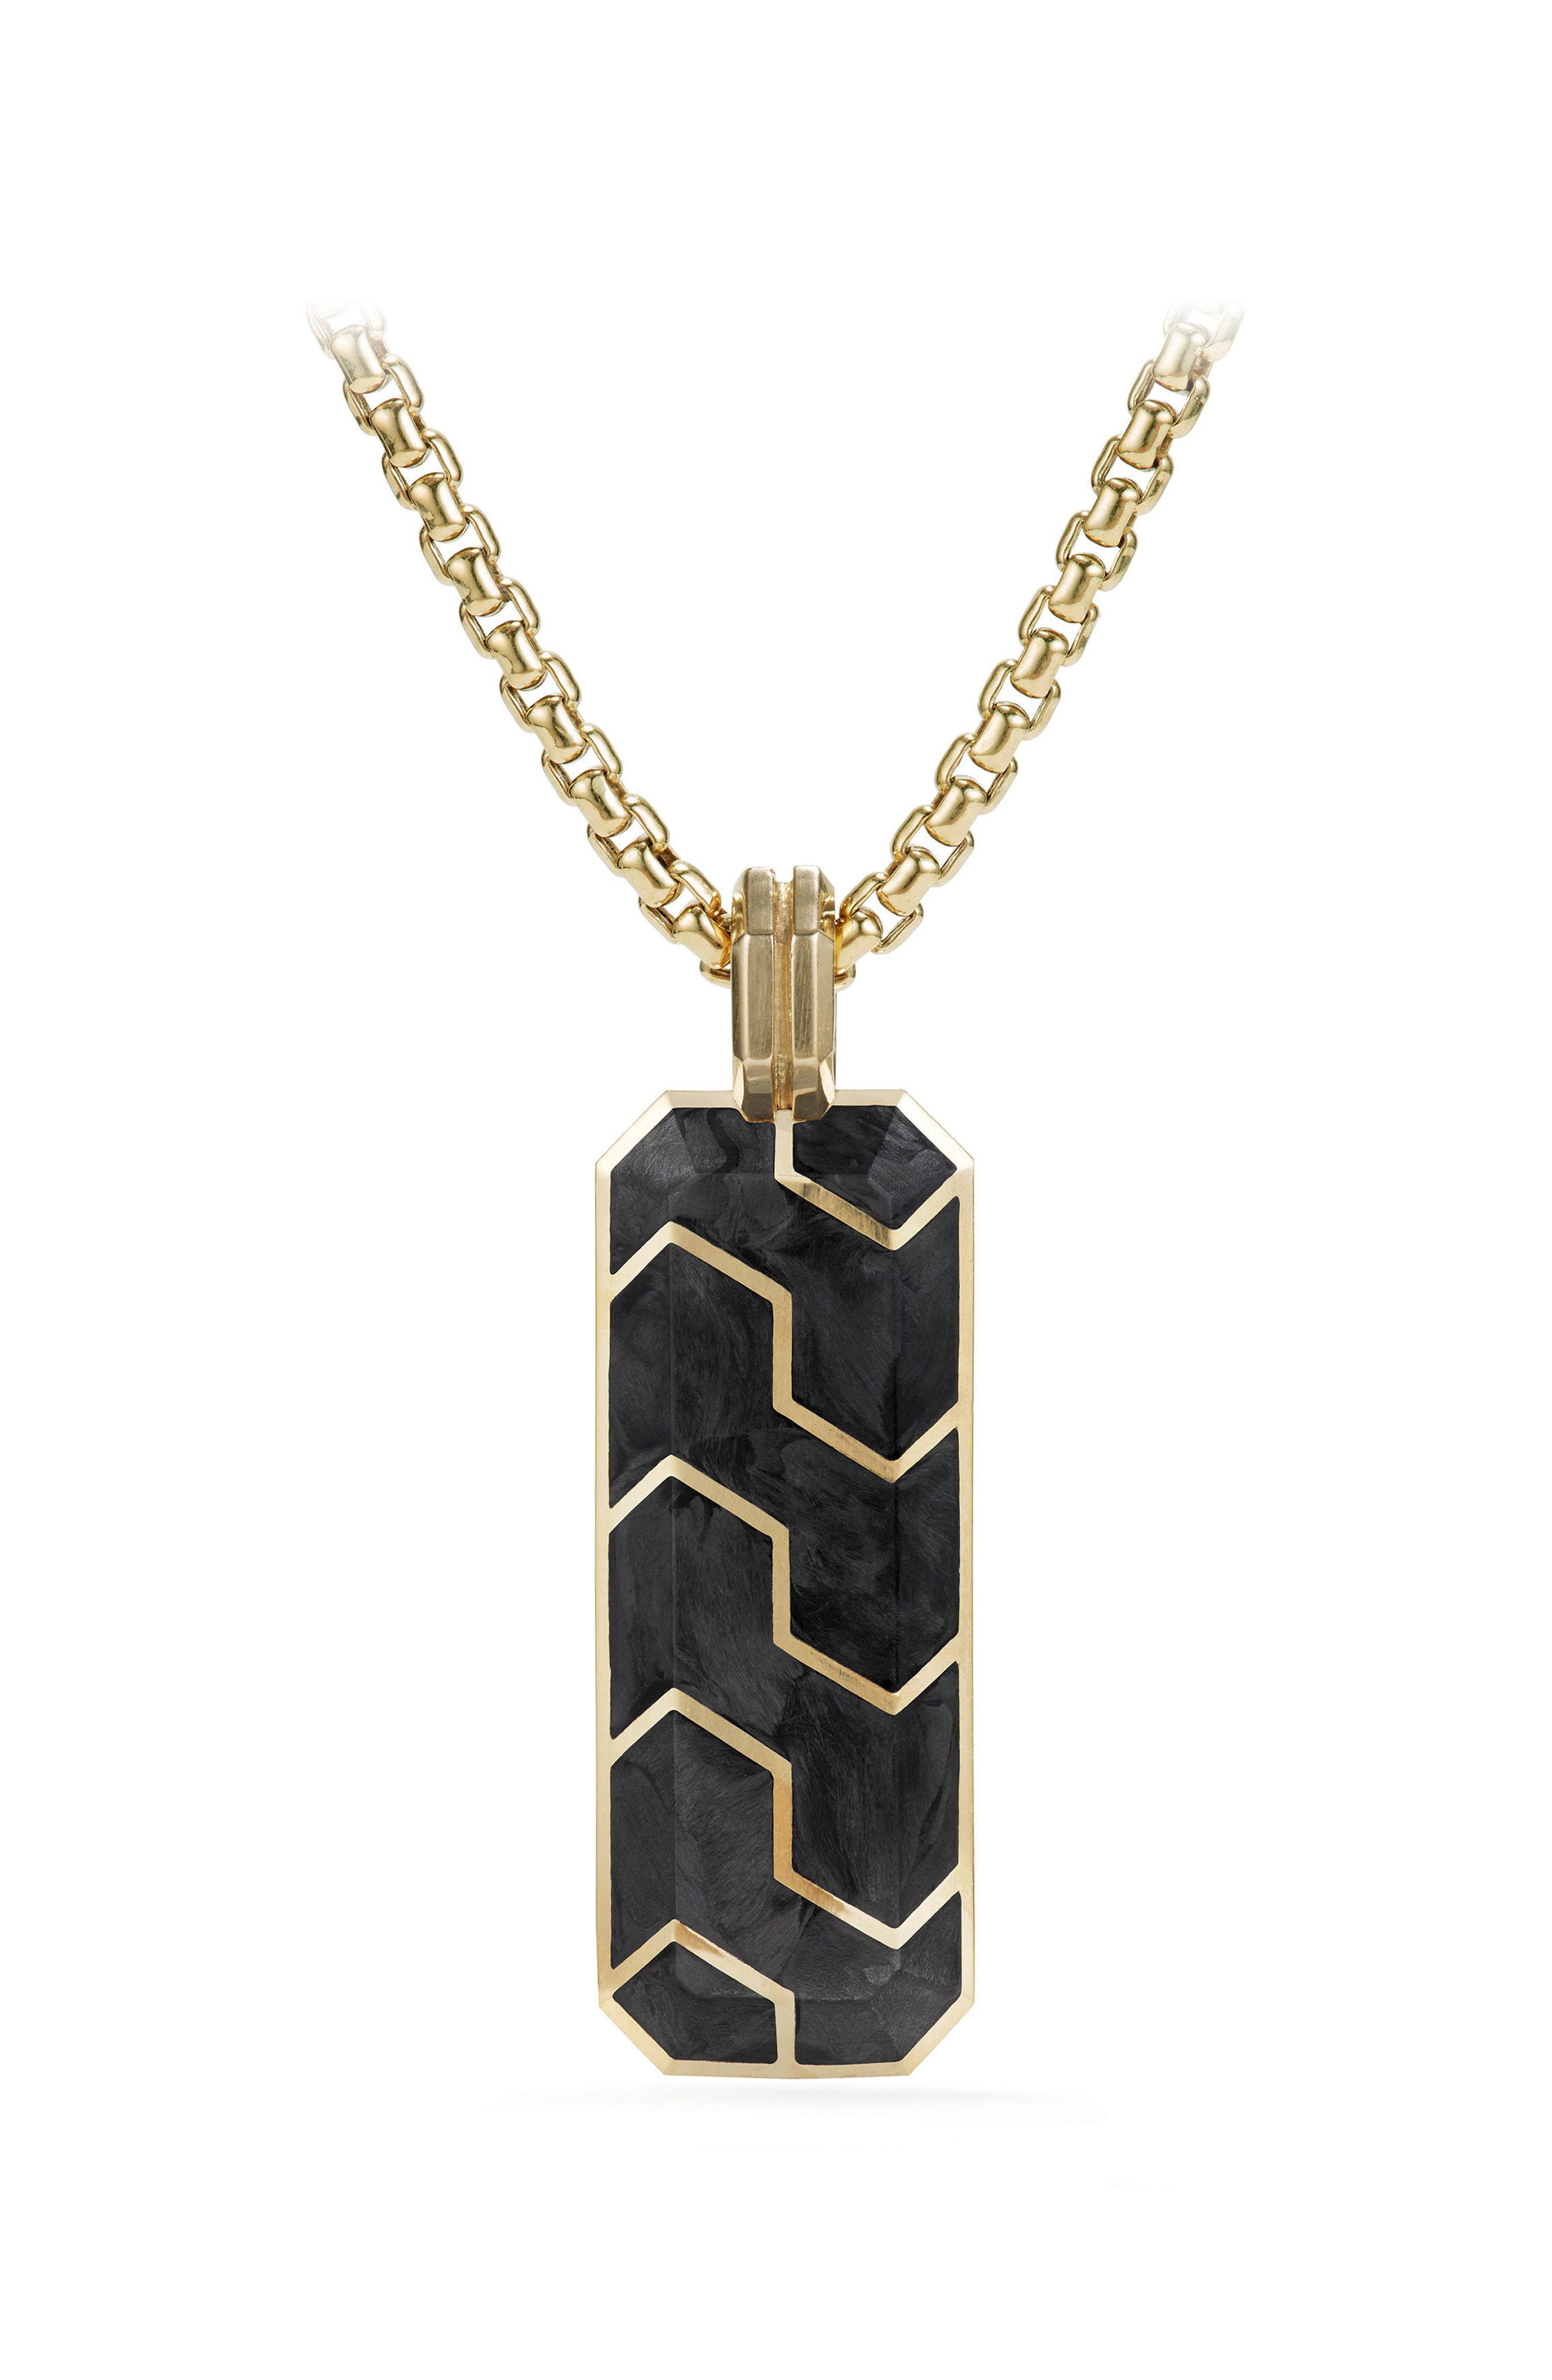 Davdi Yurman Forged Carbon Ingot Tag with 18K Gold